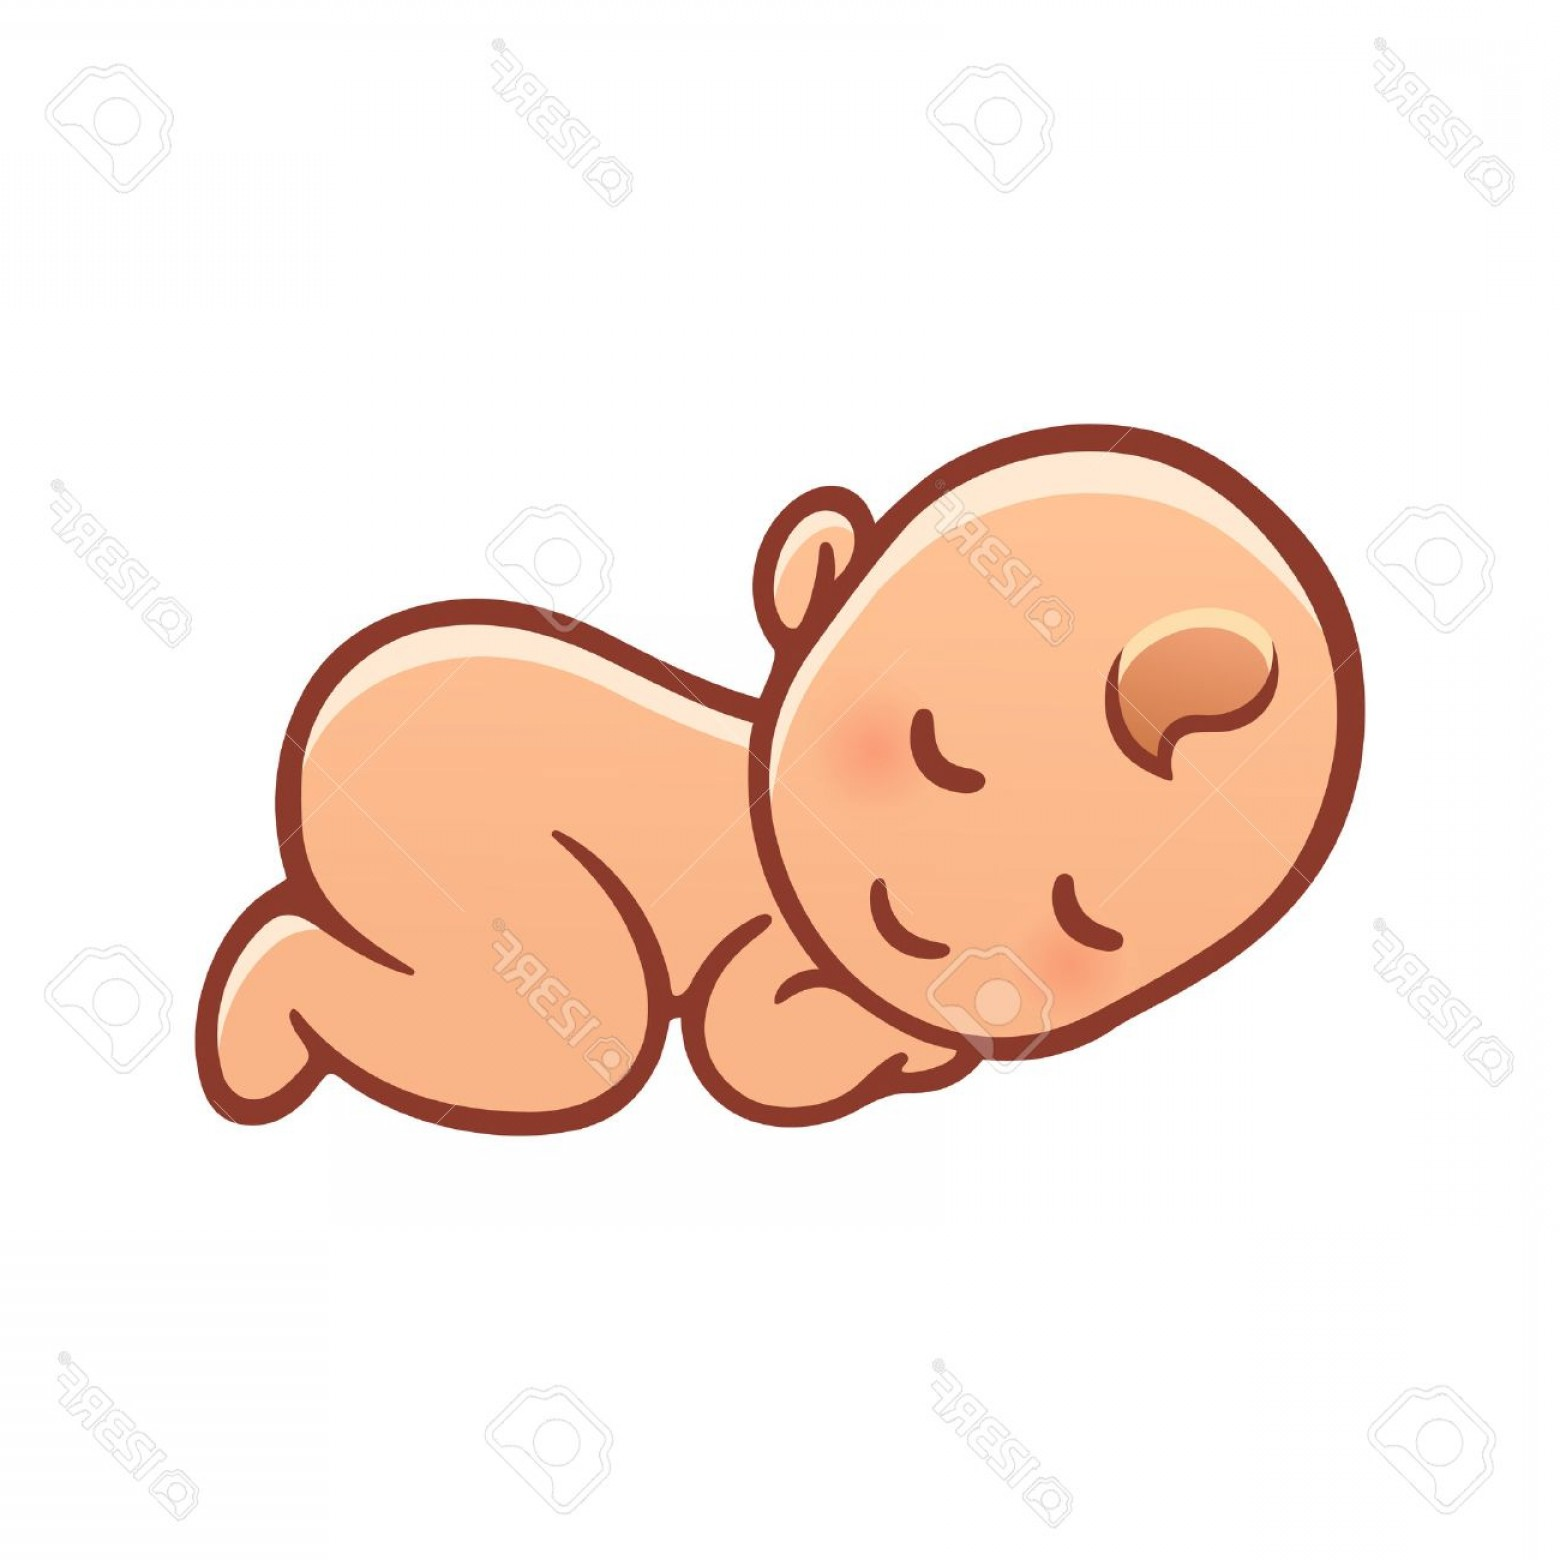 Sleeping Baby Vector: Photostock Vector Cute Sleeping Baby Drawing Simple Cartoon Vector Illustration